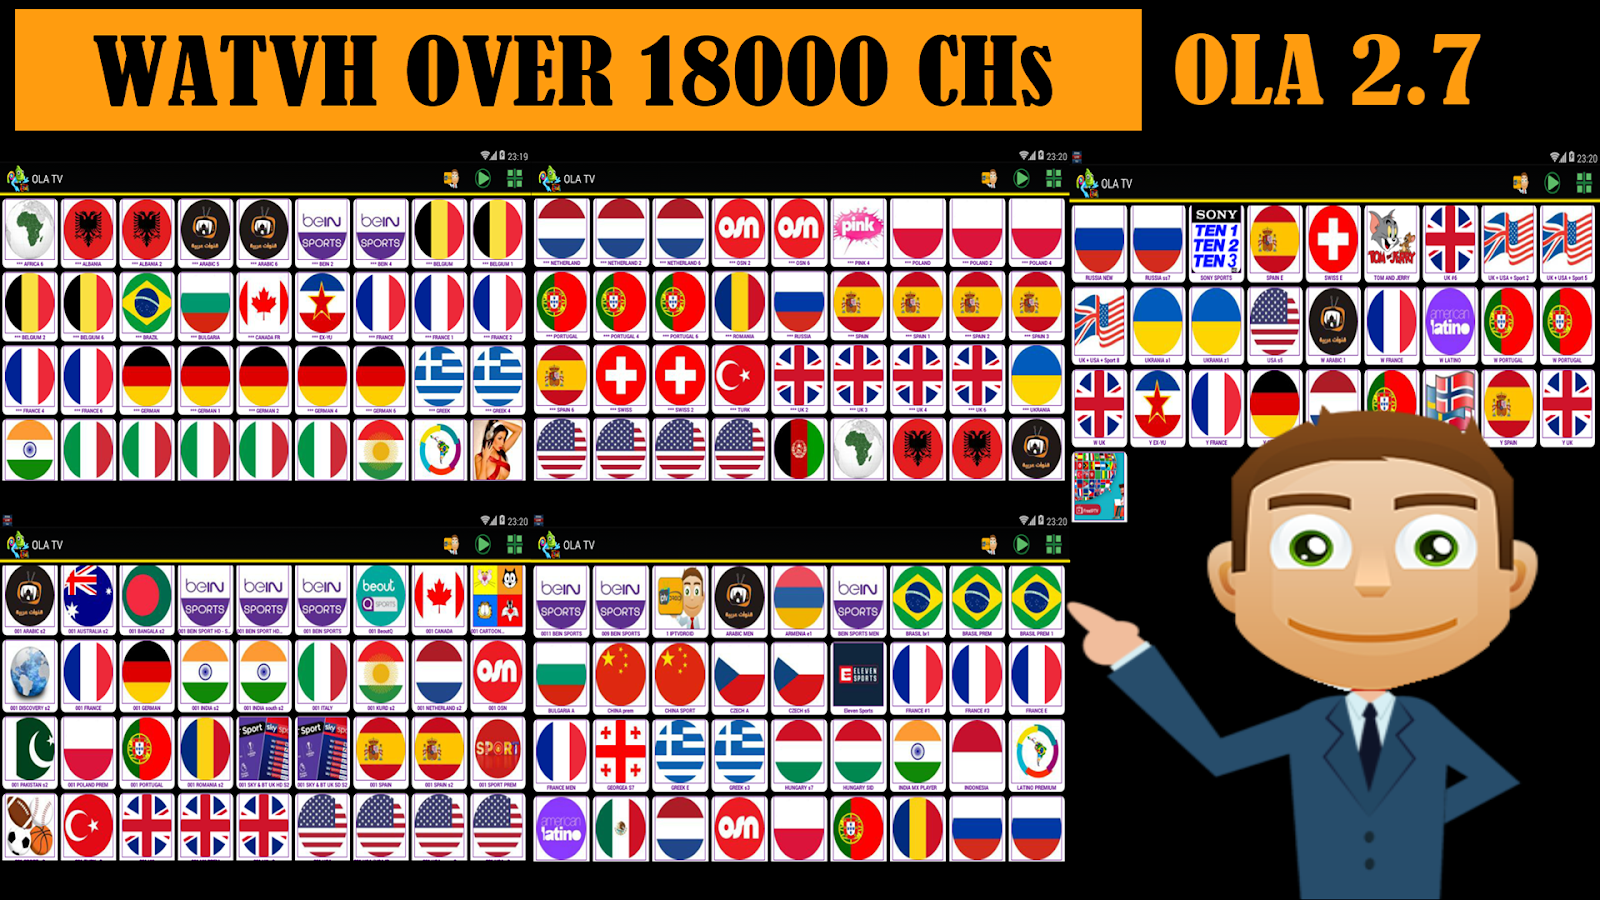 OLA TV V 2 7 BEST FREE IPTV & WATCH OVER 18000 CHANNELS